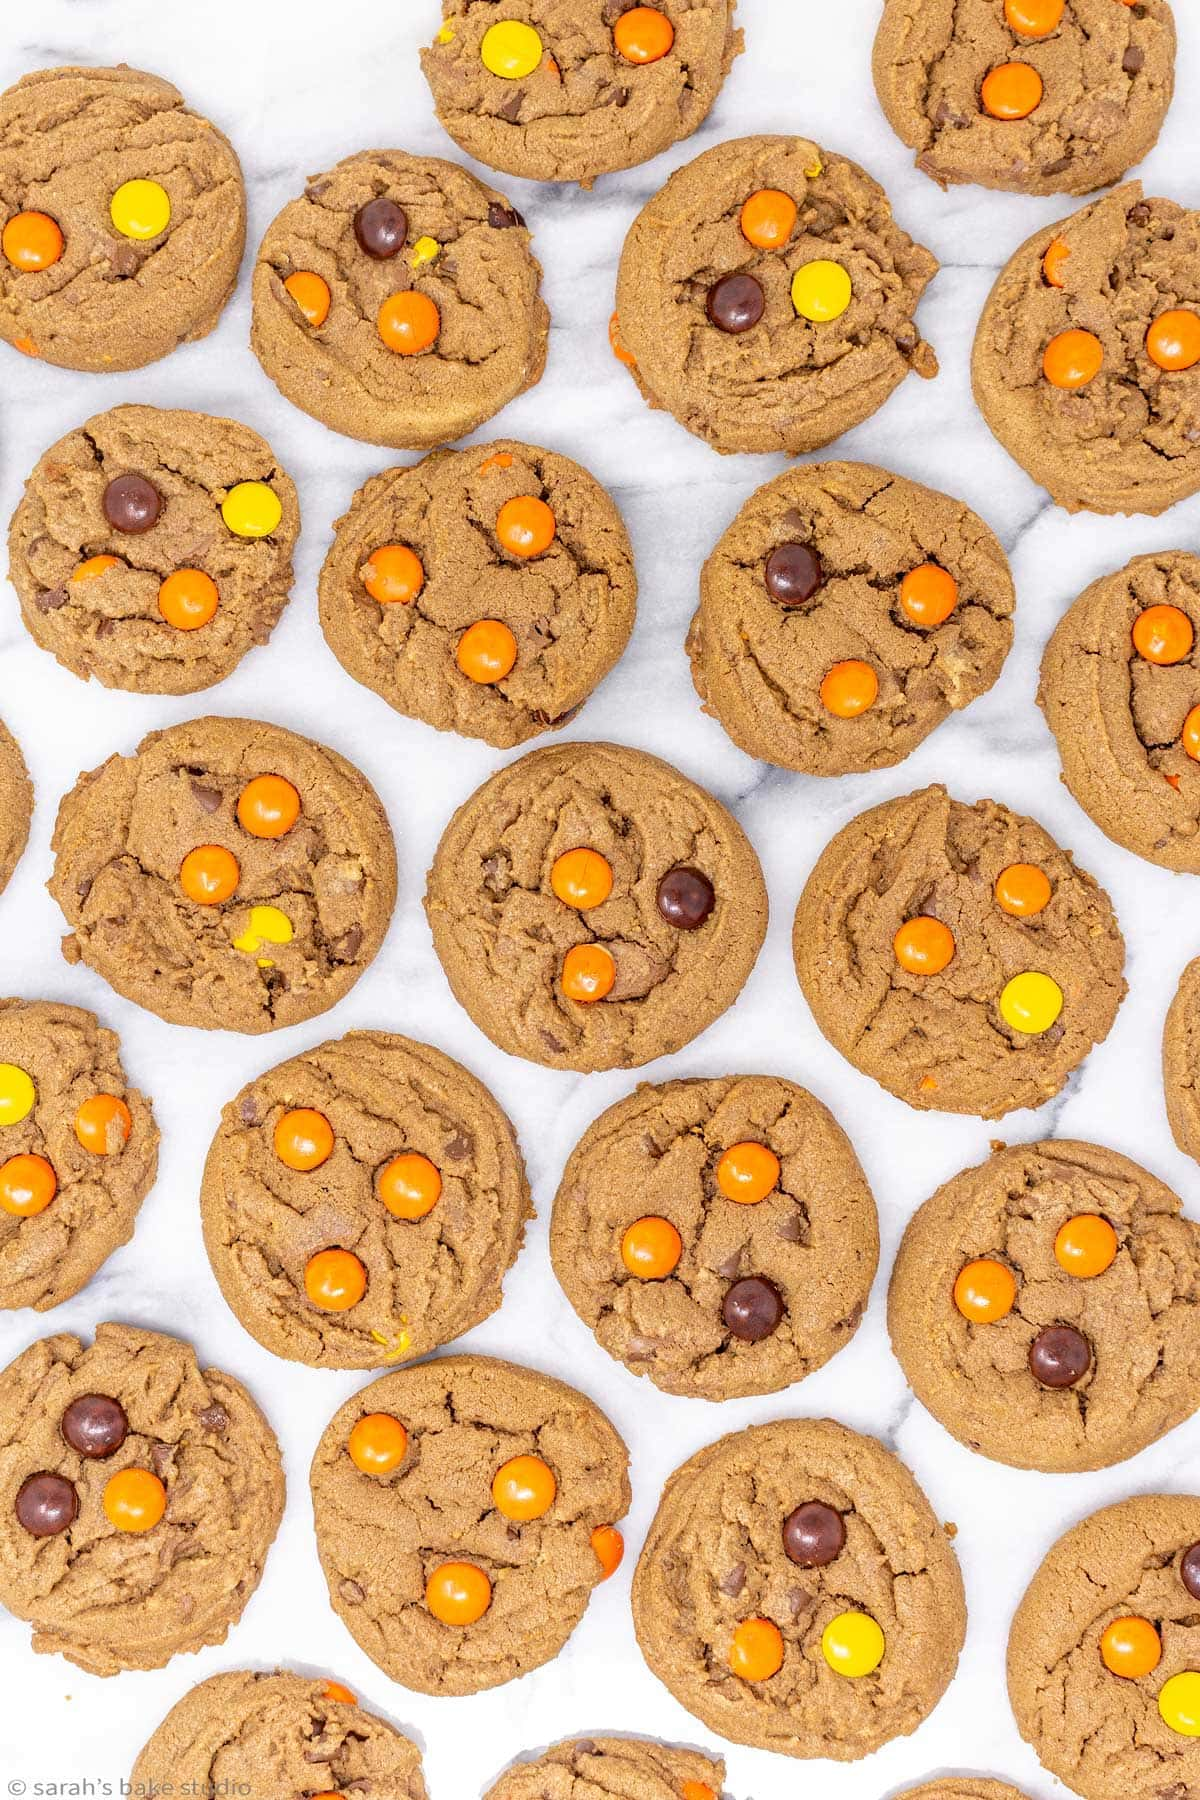 a flat-lay of Reese's chocolate peanut butter cookies.